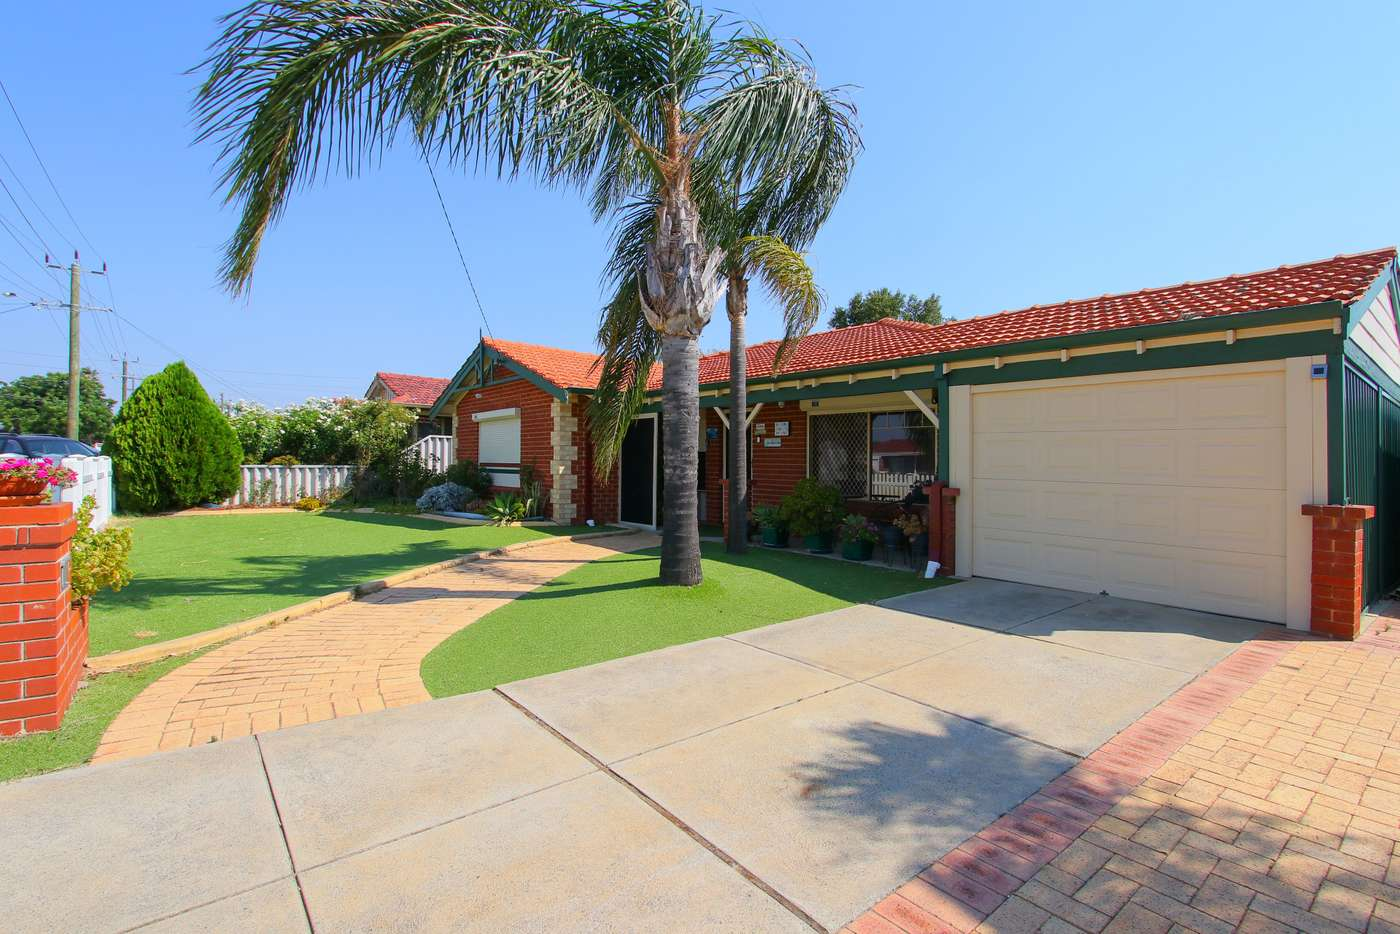 Main view of Homely house listing, 10 Jooleen Way, Thornlie WA 6108